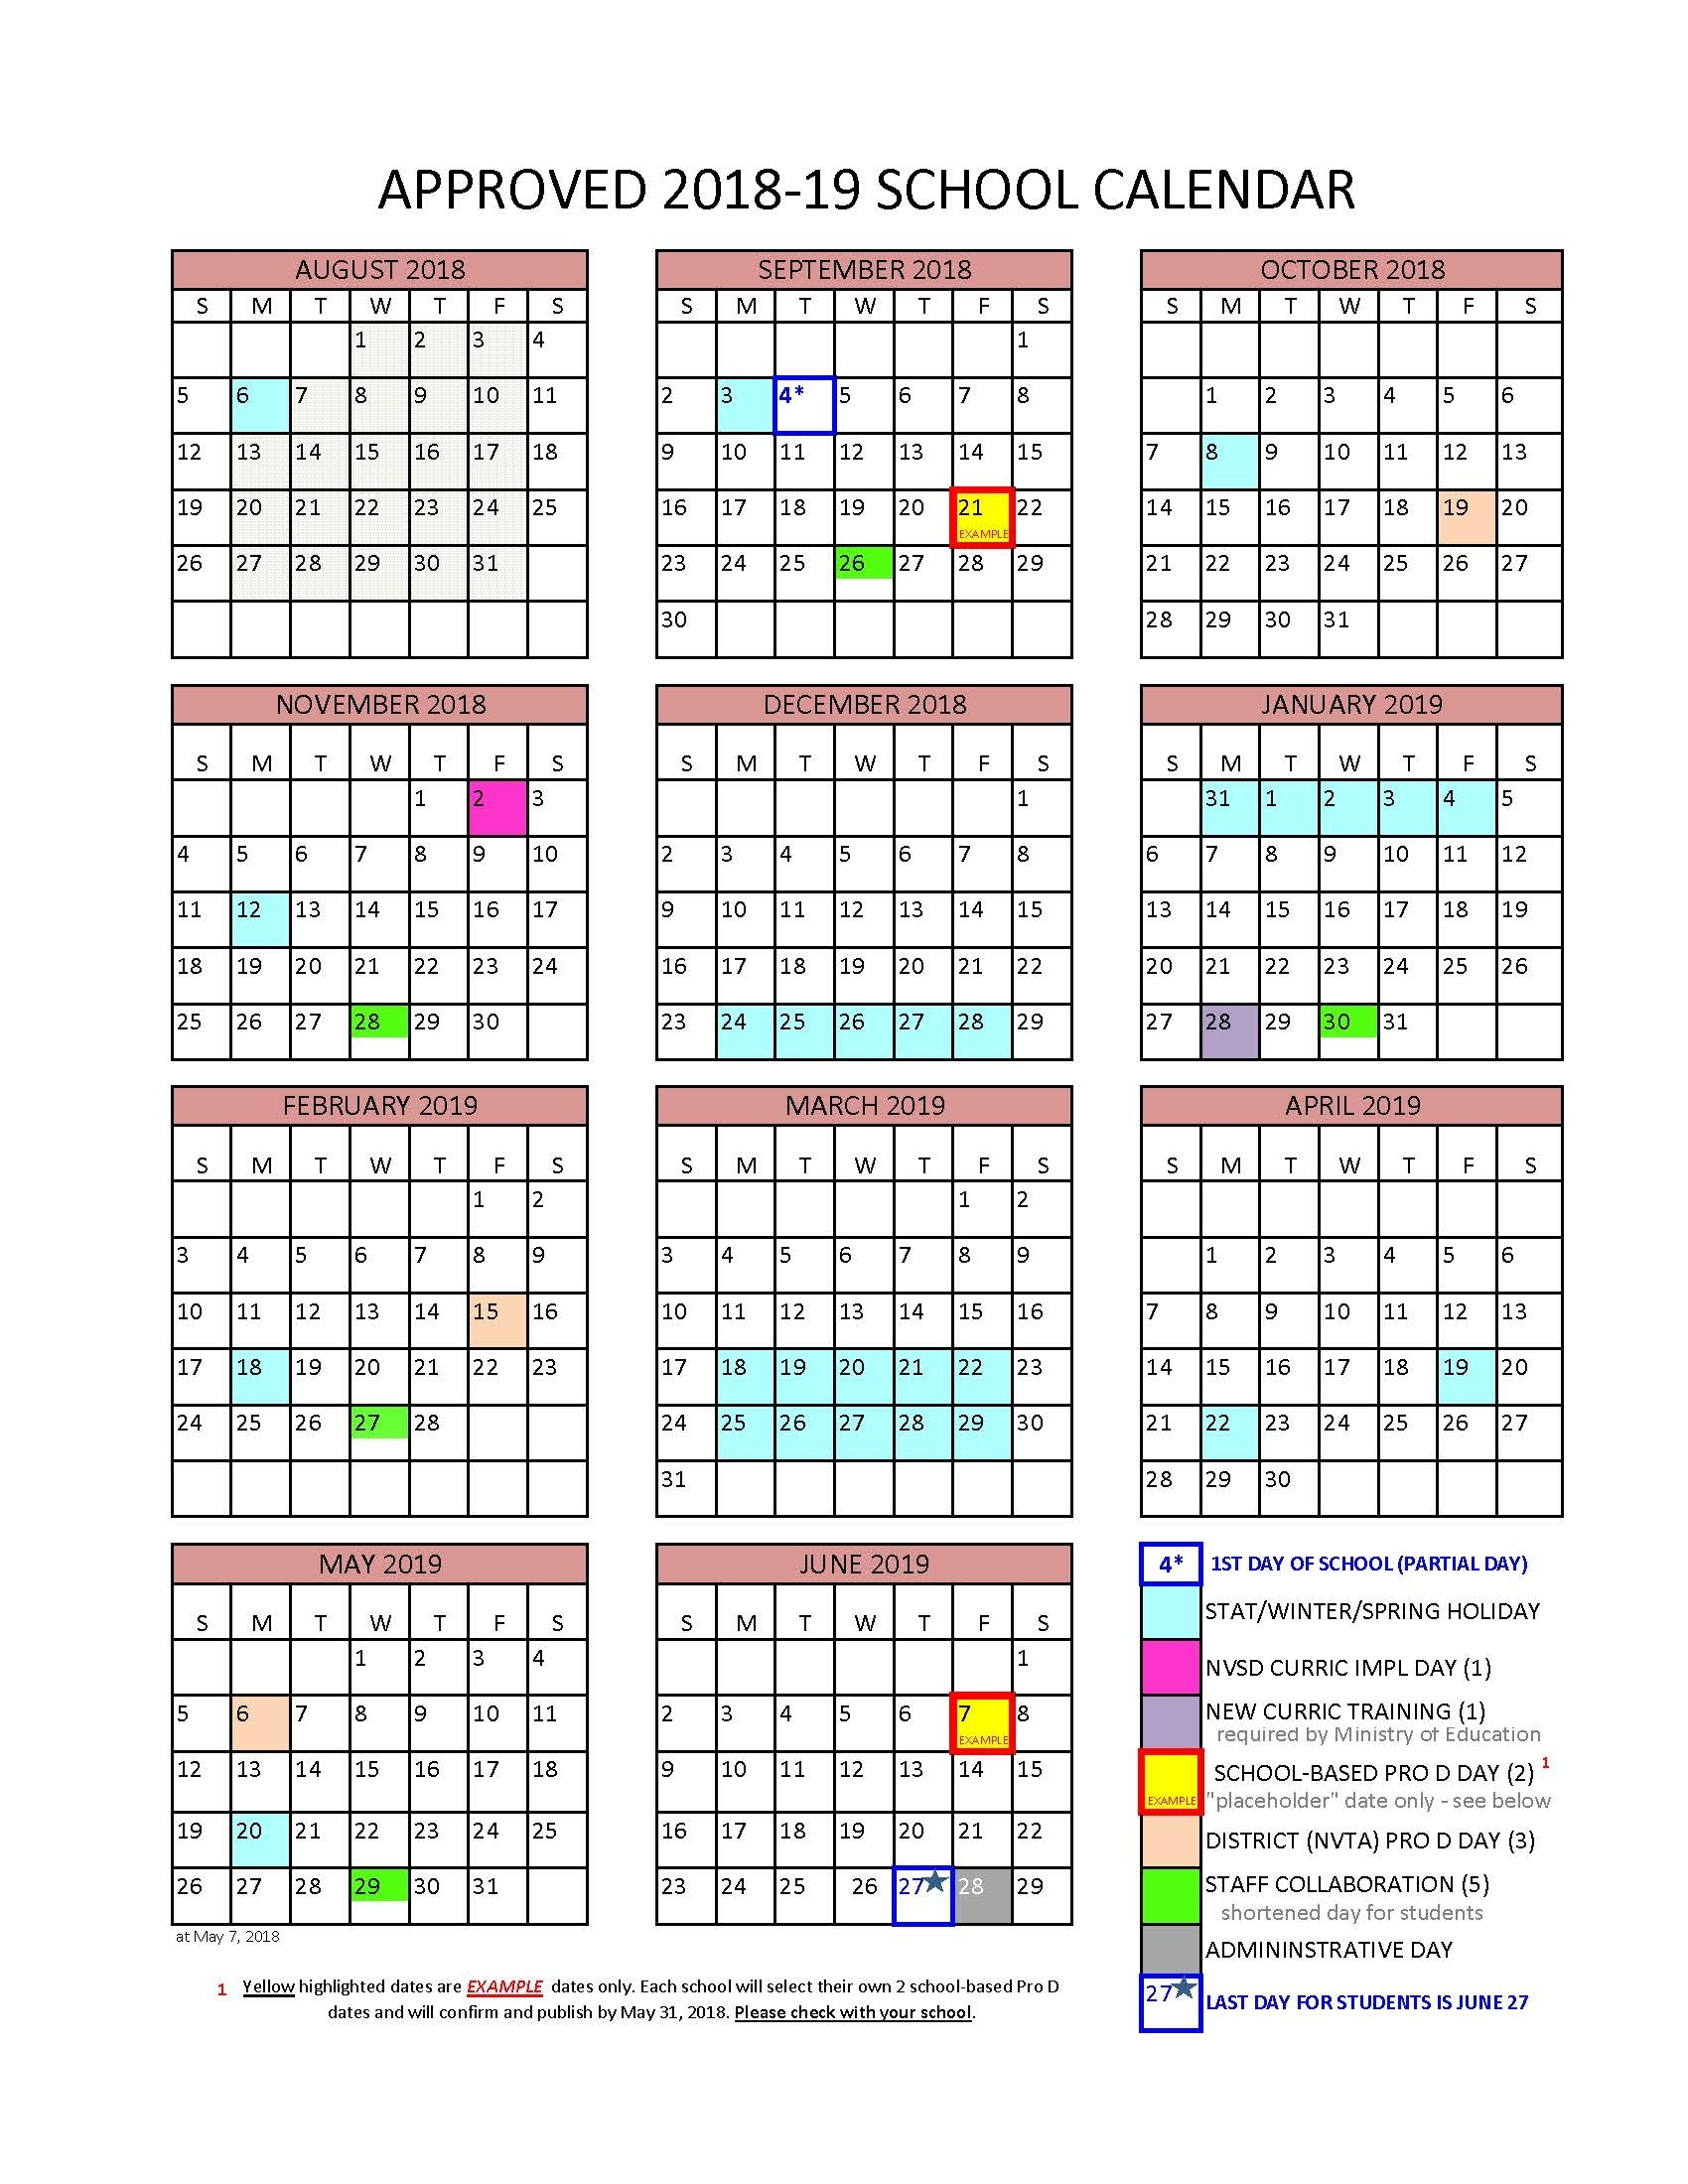 District Calendar - North Vancouver School District intended for U Of T 2019 2020 Calendar